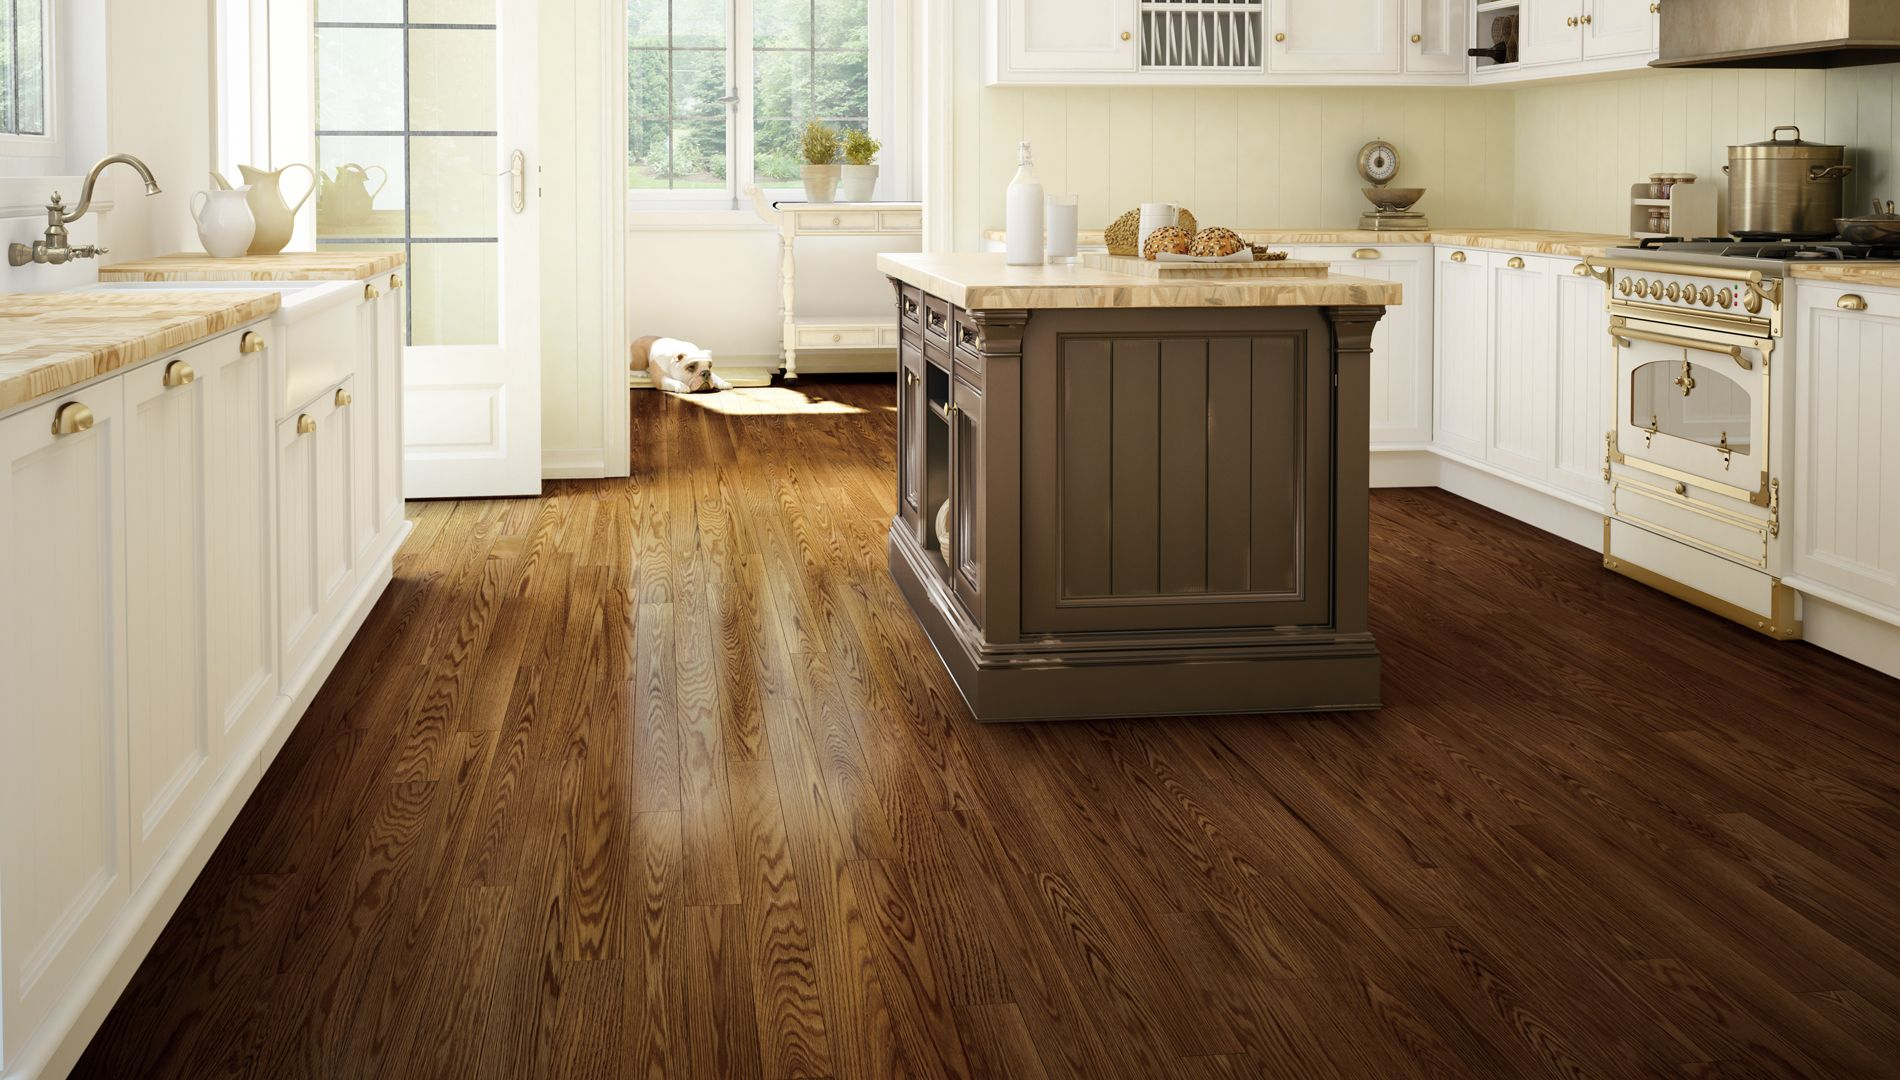 Cigarillo designer red oak antique lauzon hardwood for Hardwood floors kitchen